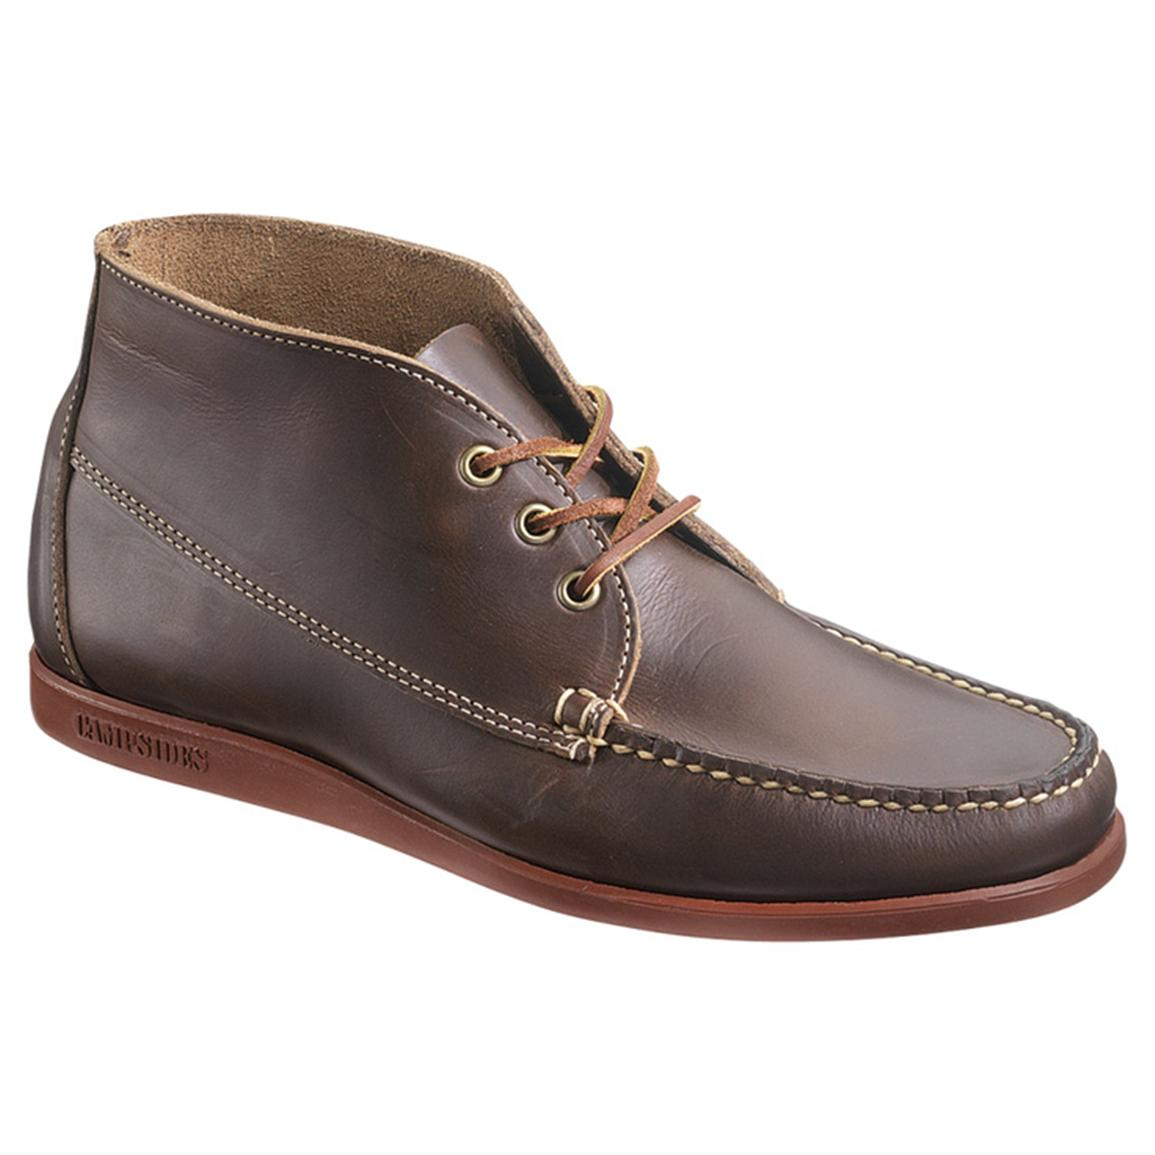 Men's Campsides™ Chukka Boots, Brown